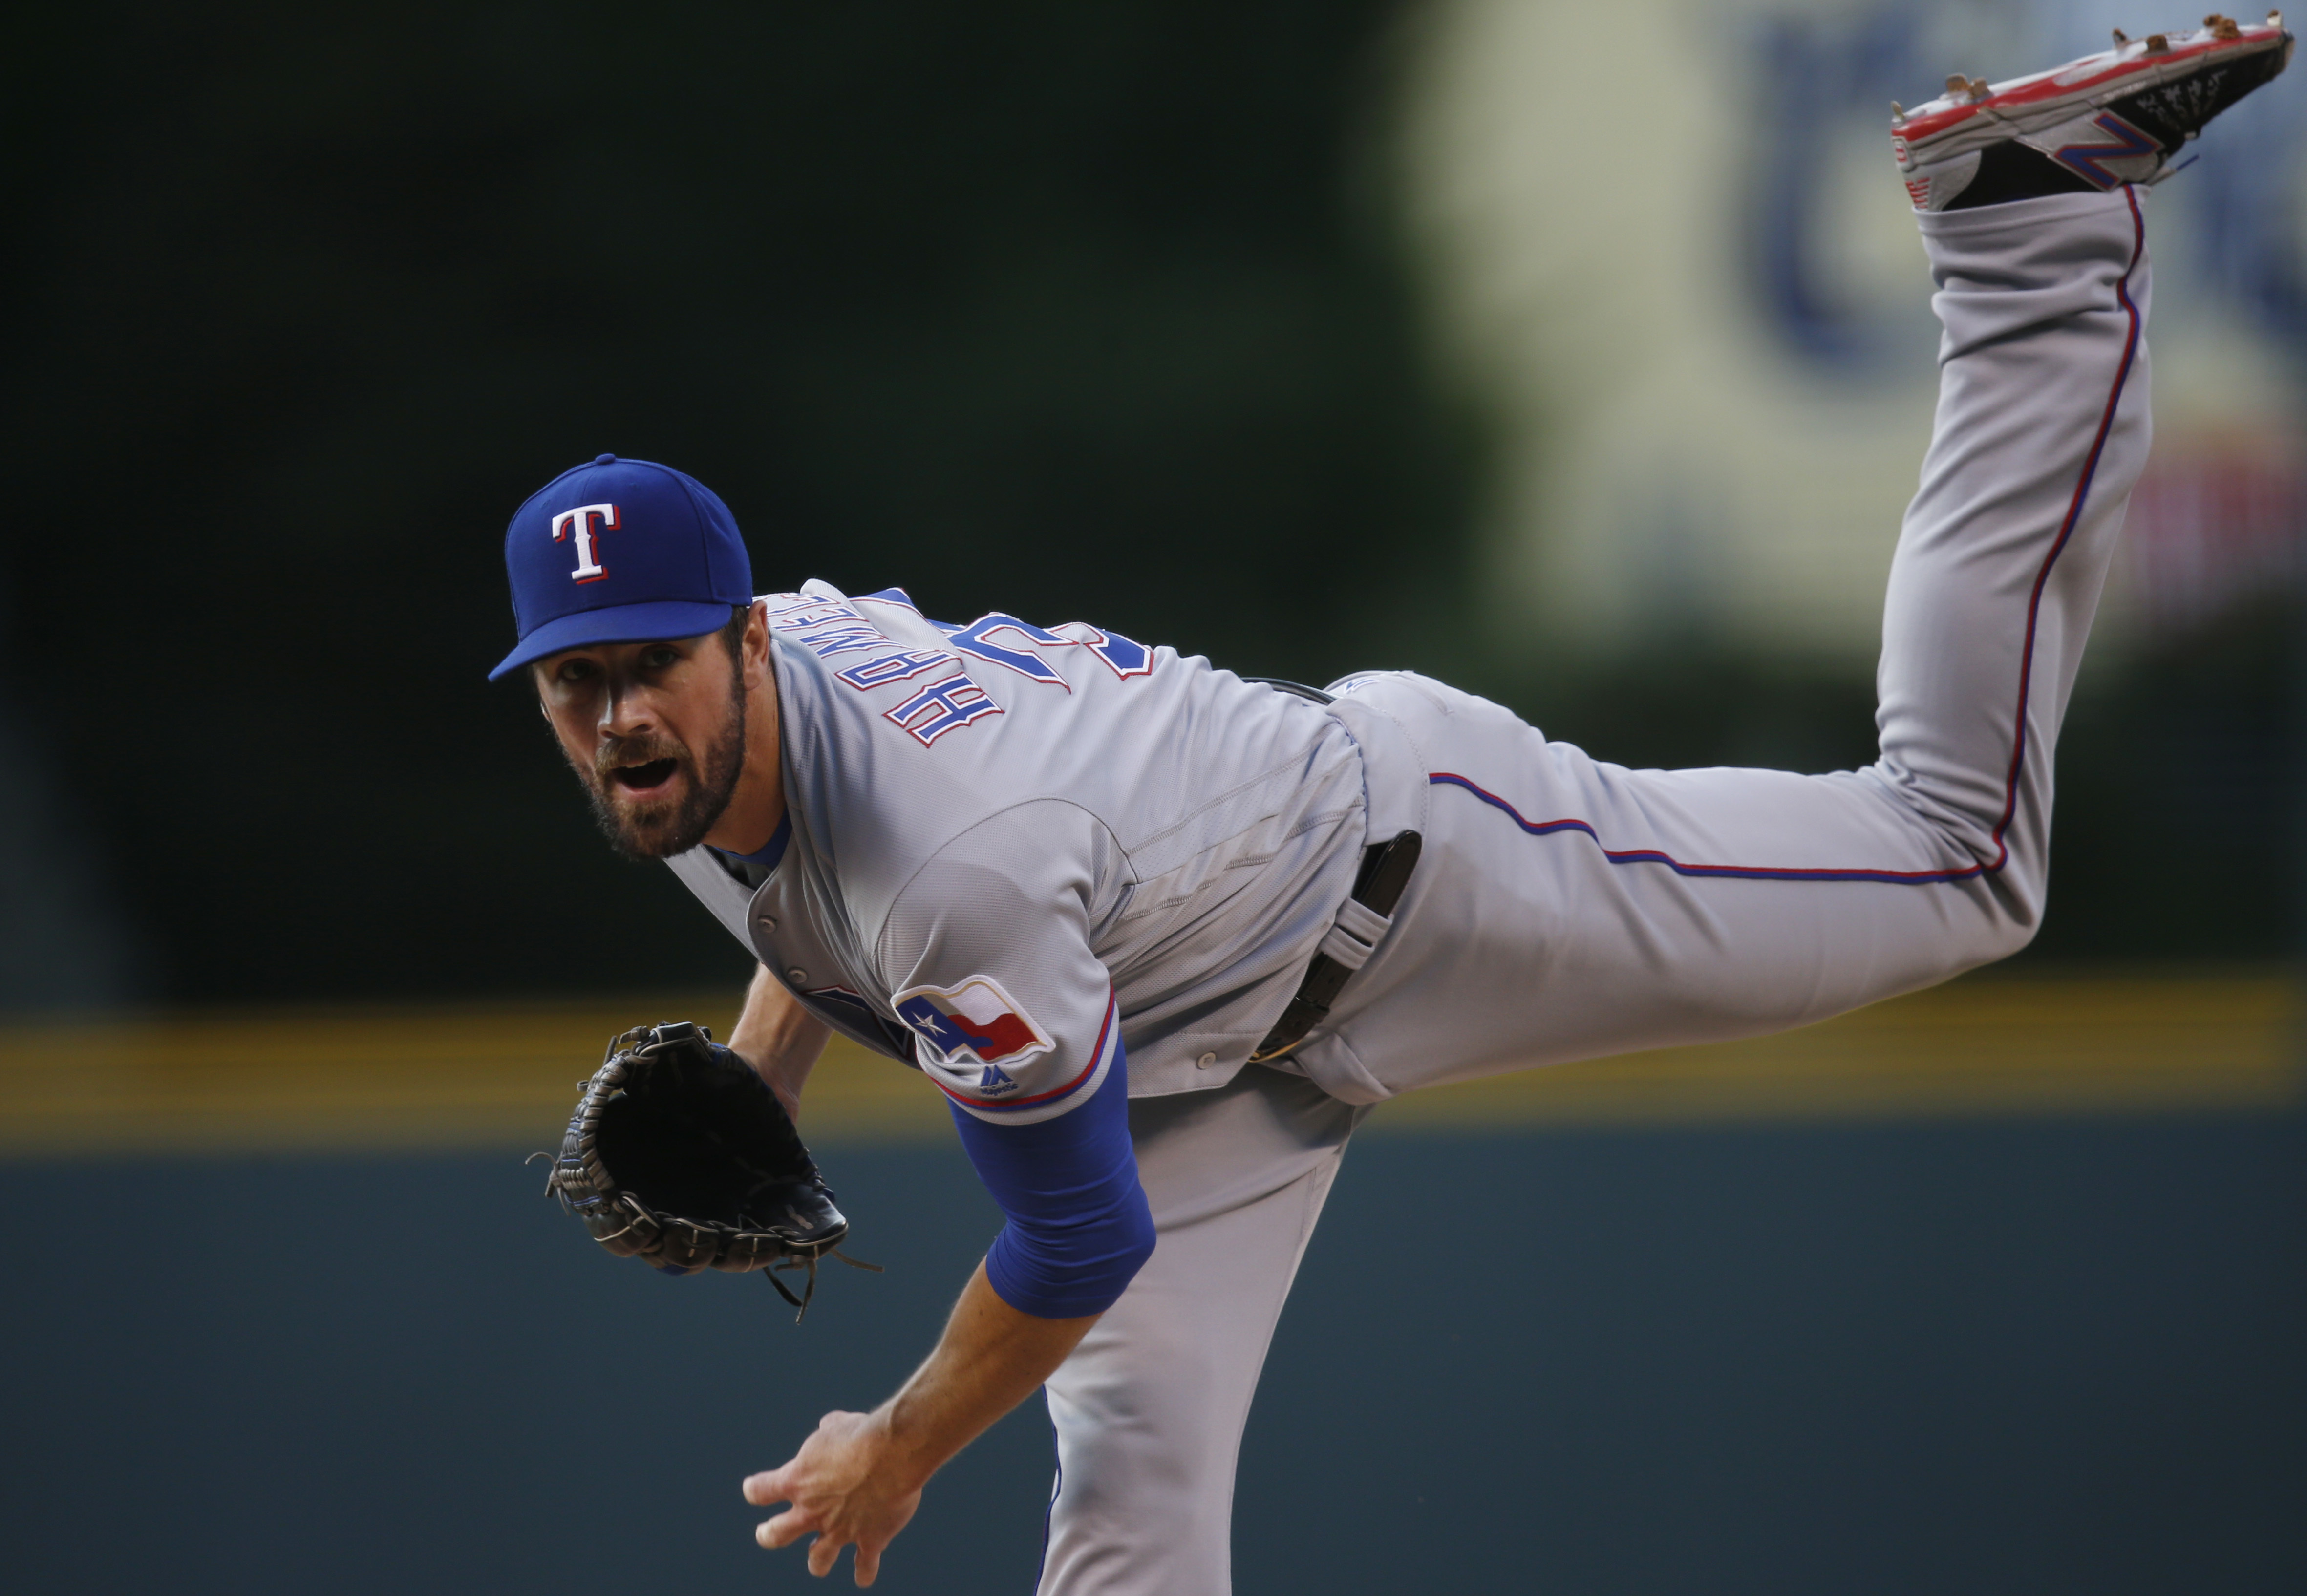 Texas Rangers starting pitcher Cole Hamels delivers a pitch to Colorado Rockies' DJ LeMahieu in the first inning of a baseball game, Monday, Aug. 8, 2016 in Denver. (AP Photo/David Zalubowski)